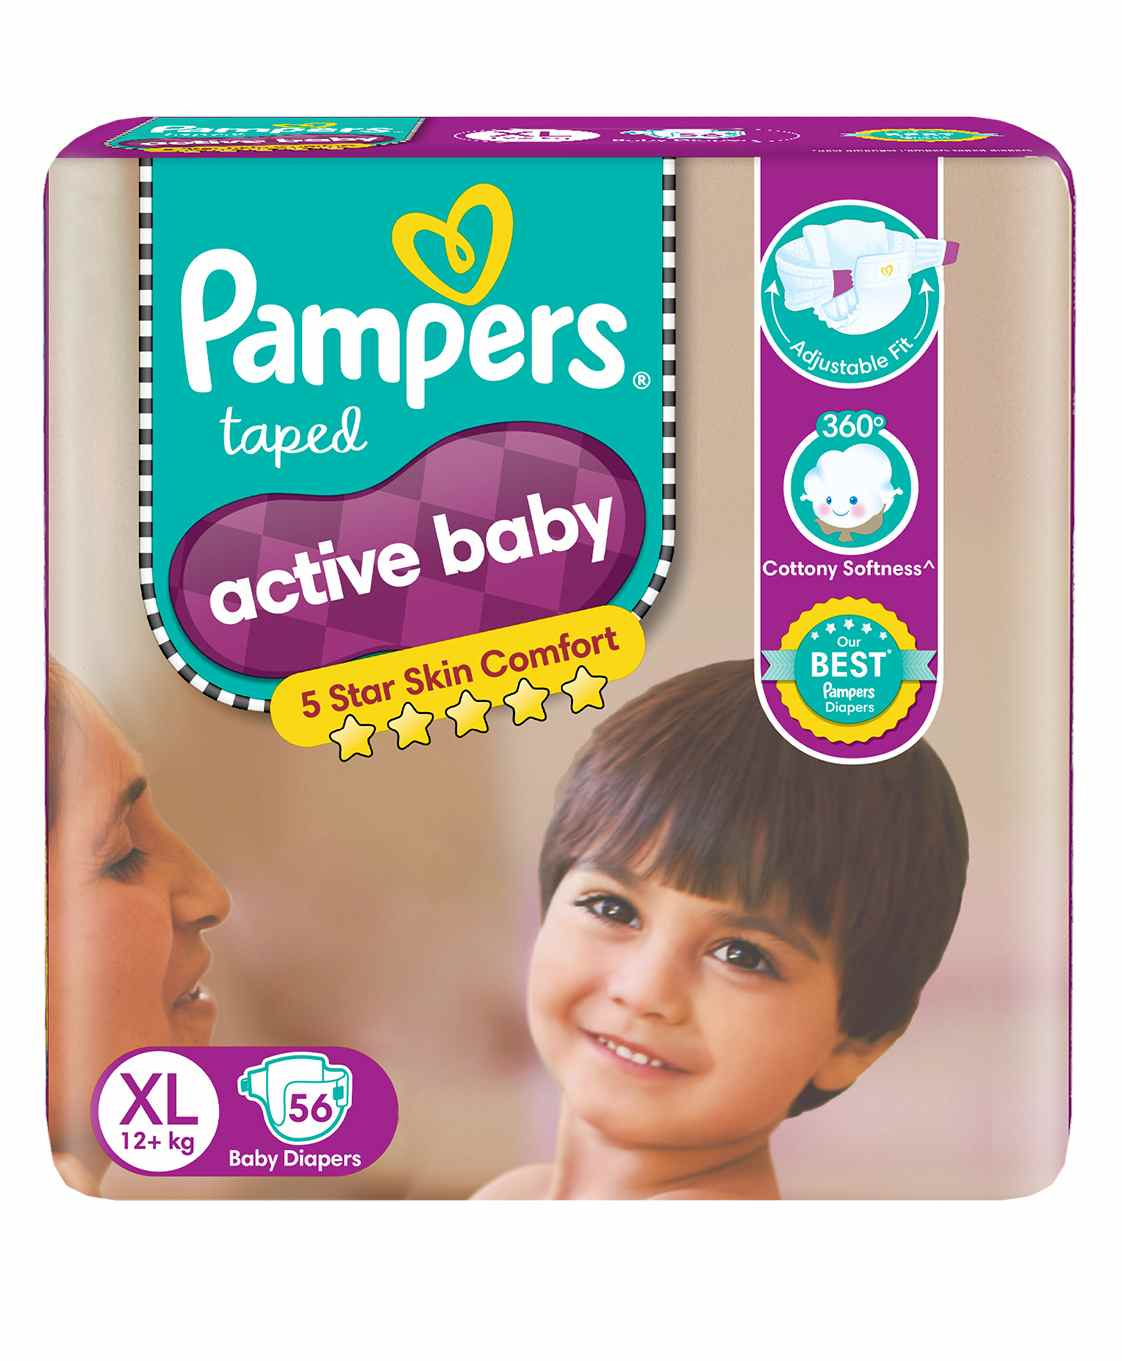 Baby Diapers For Weight 18 To 25 Kg Buy Online At Mamypoko Pants L 28 Pampers Active Extra Large 56 Pieces